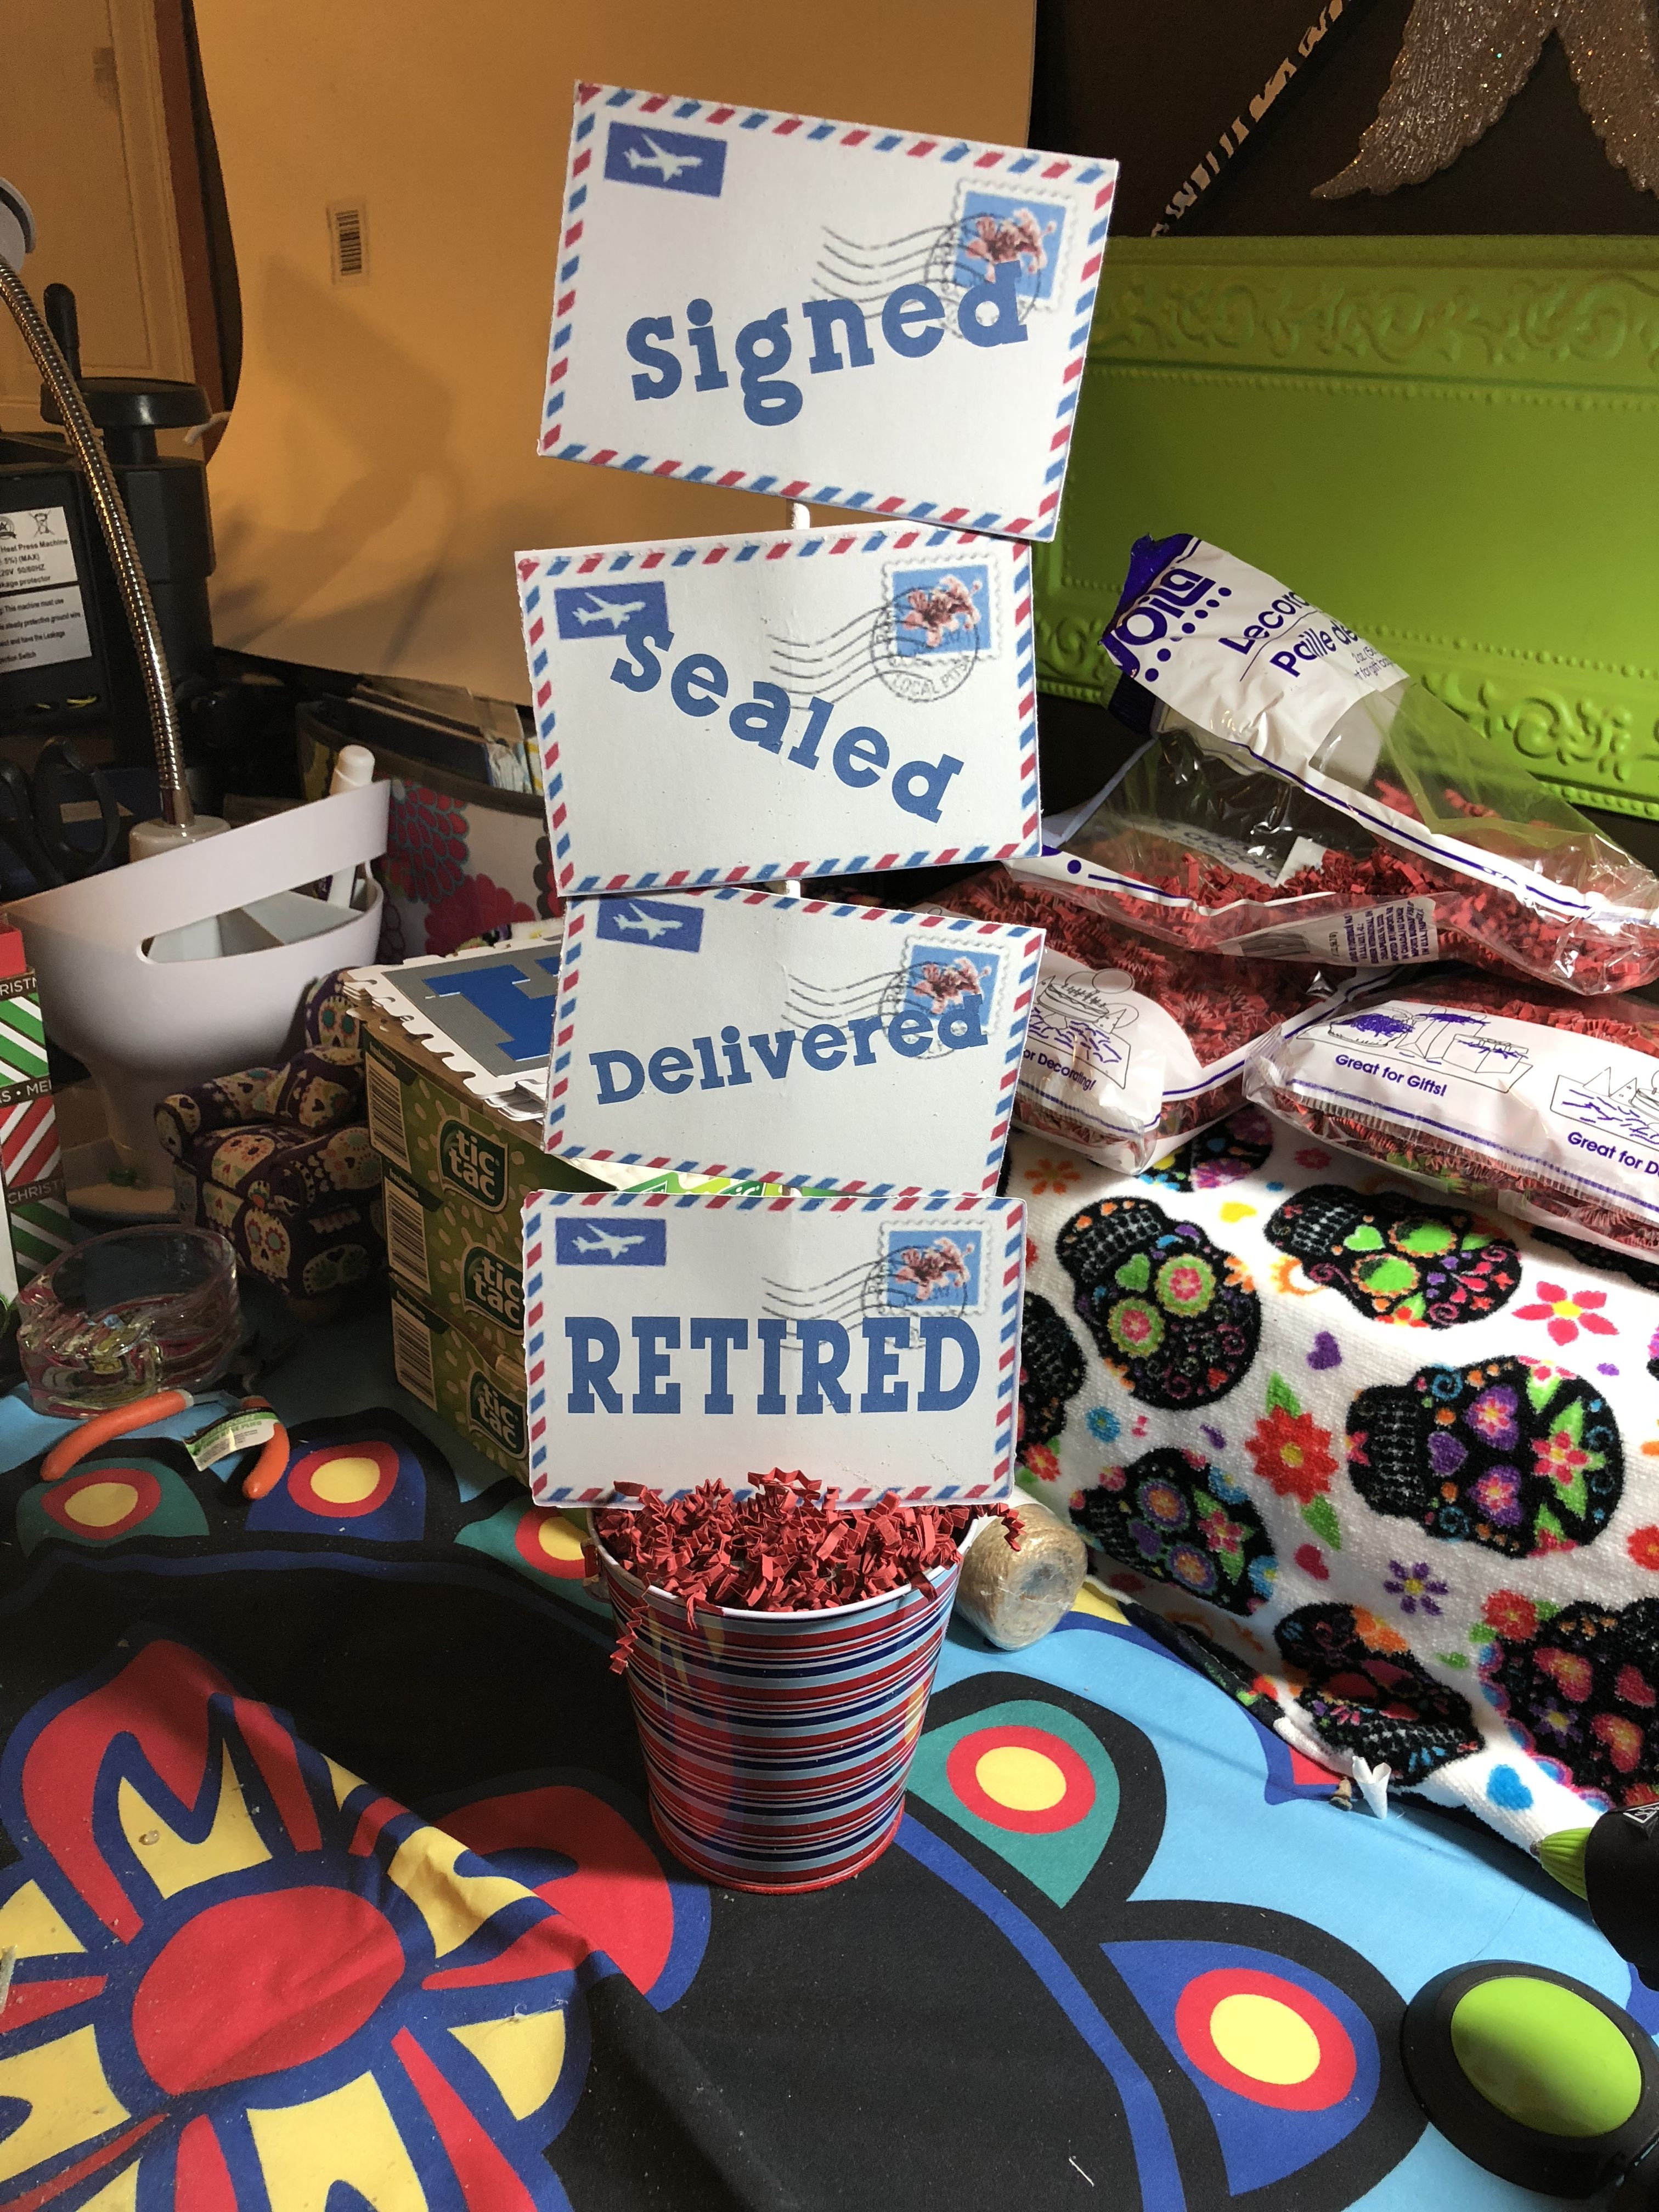 Best Retirement Party Ideas  Signed sealed delivered retired decor Postman retirement